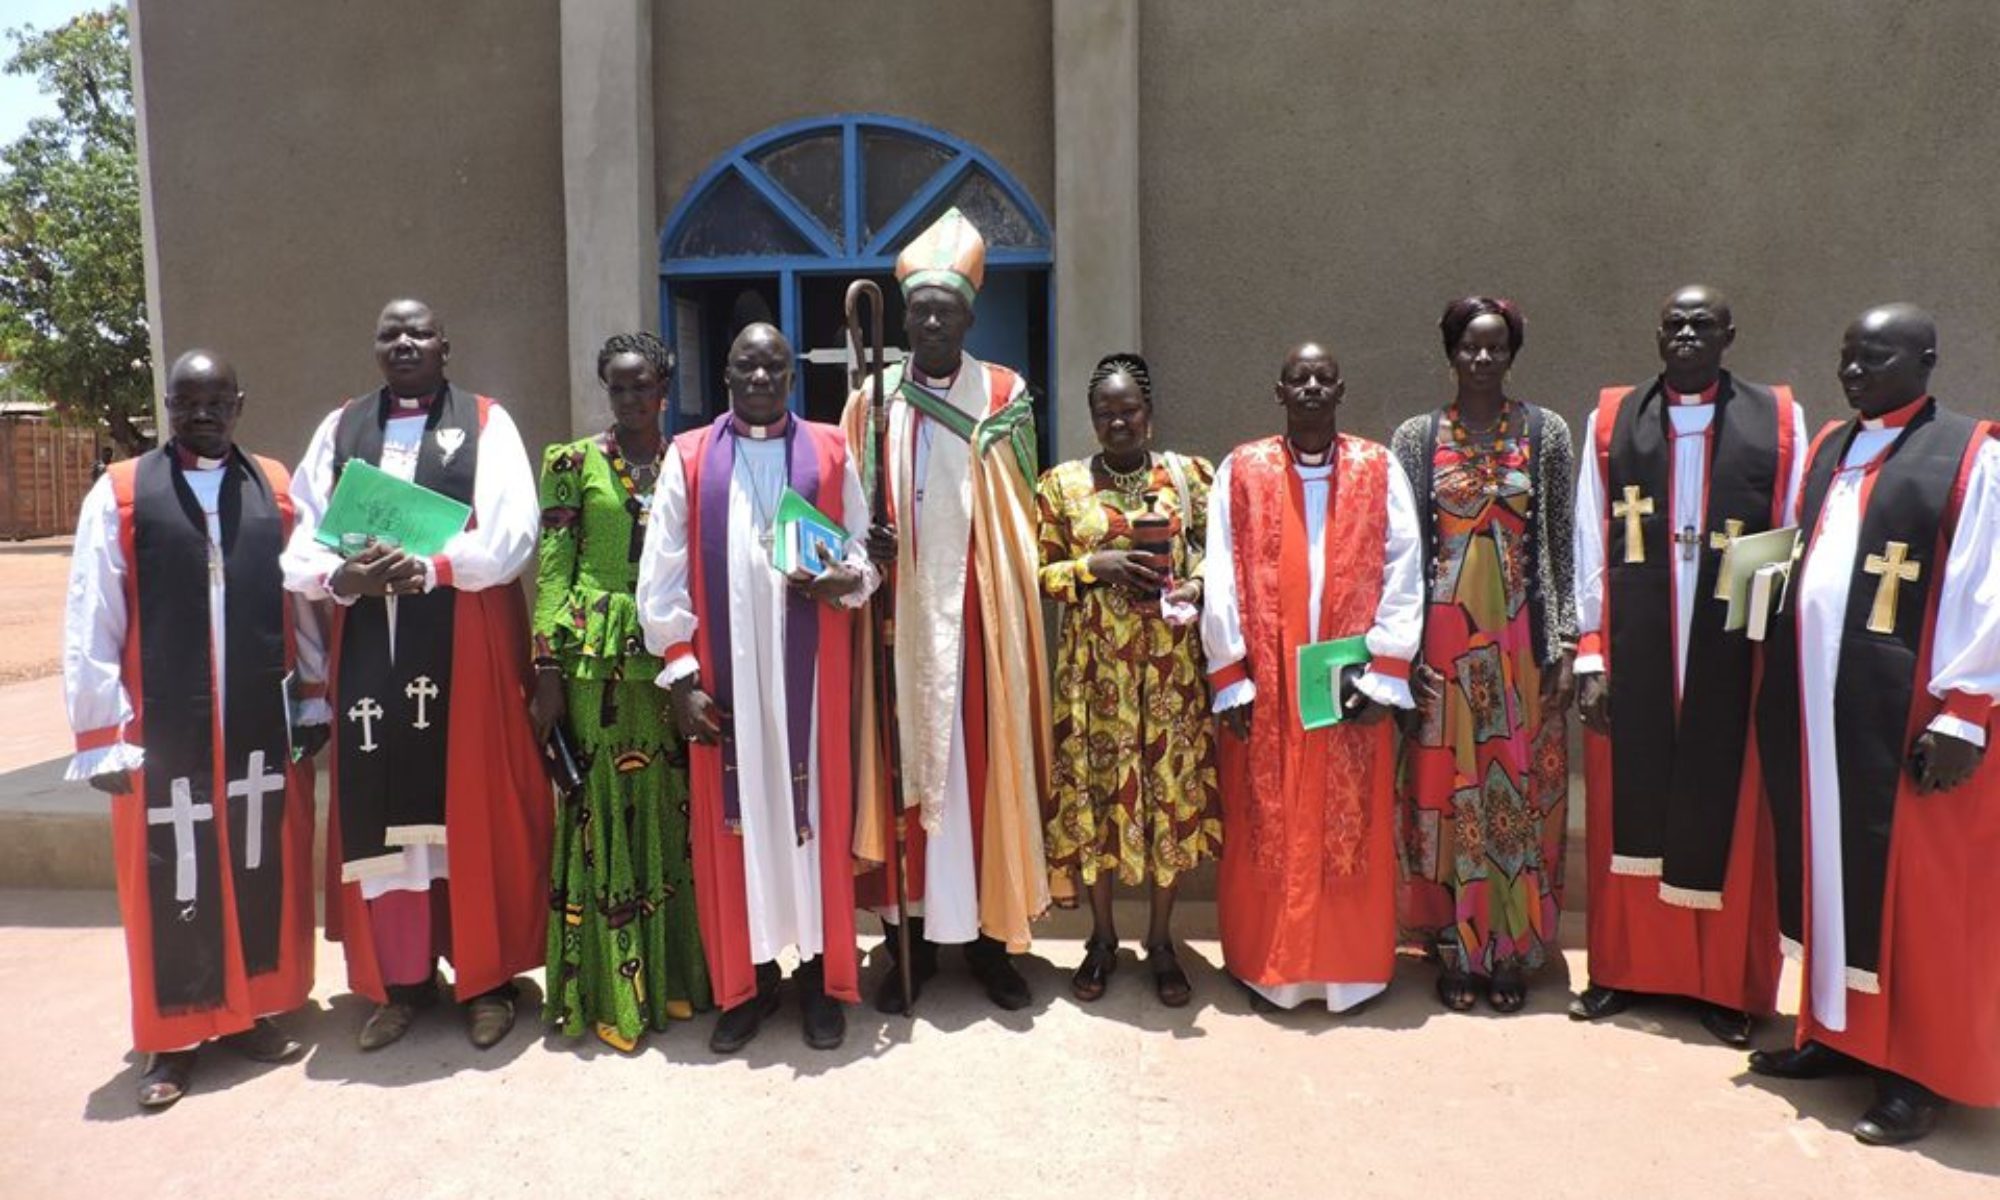 Diocese of Aweil